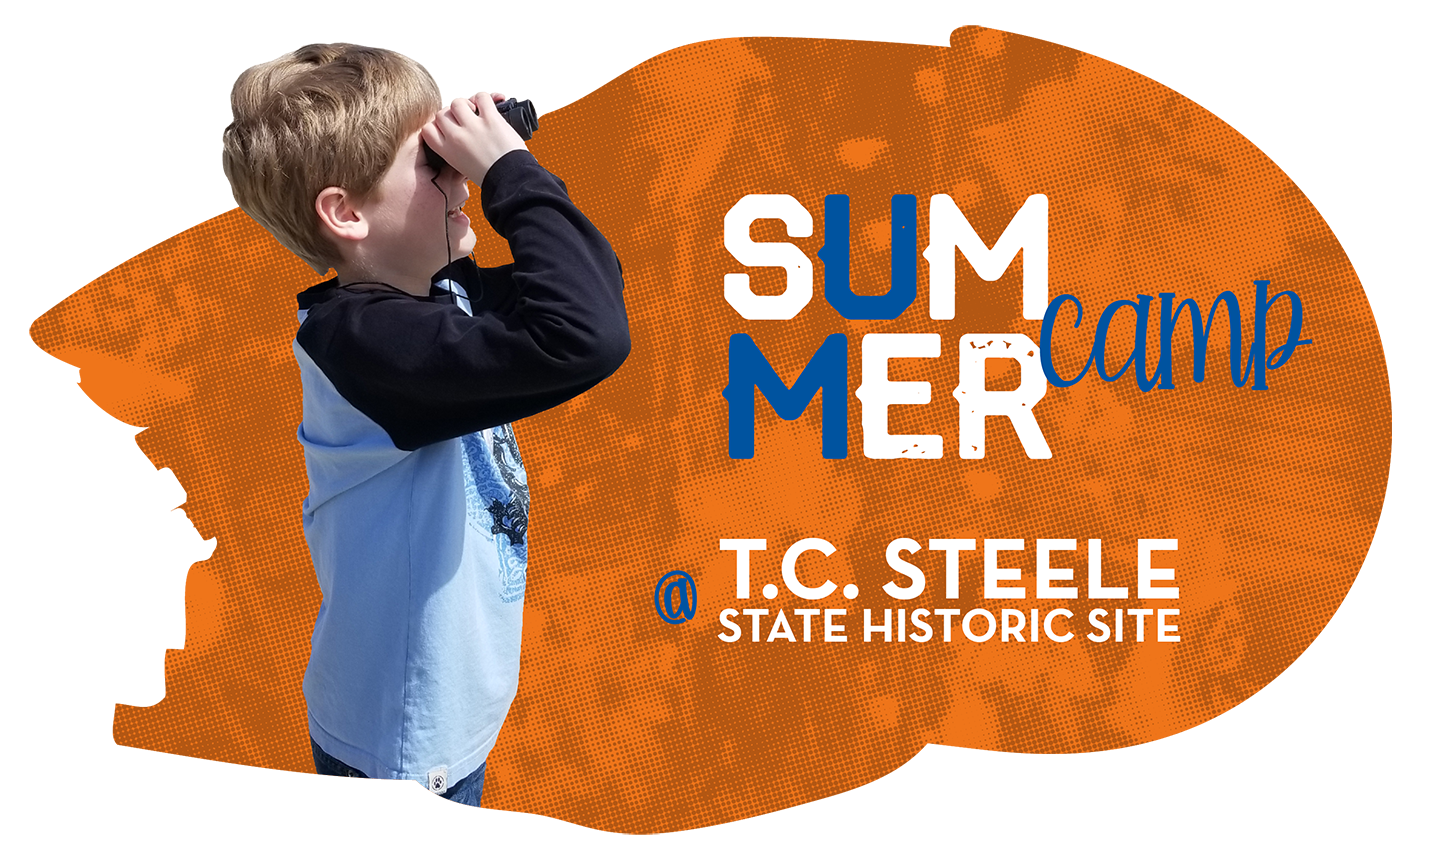 Summer camp at T.C. Steele State Historic Site